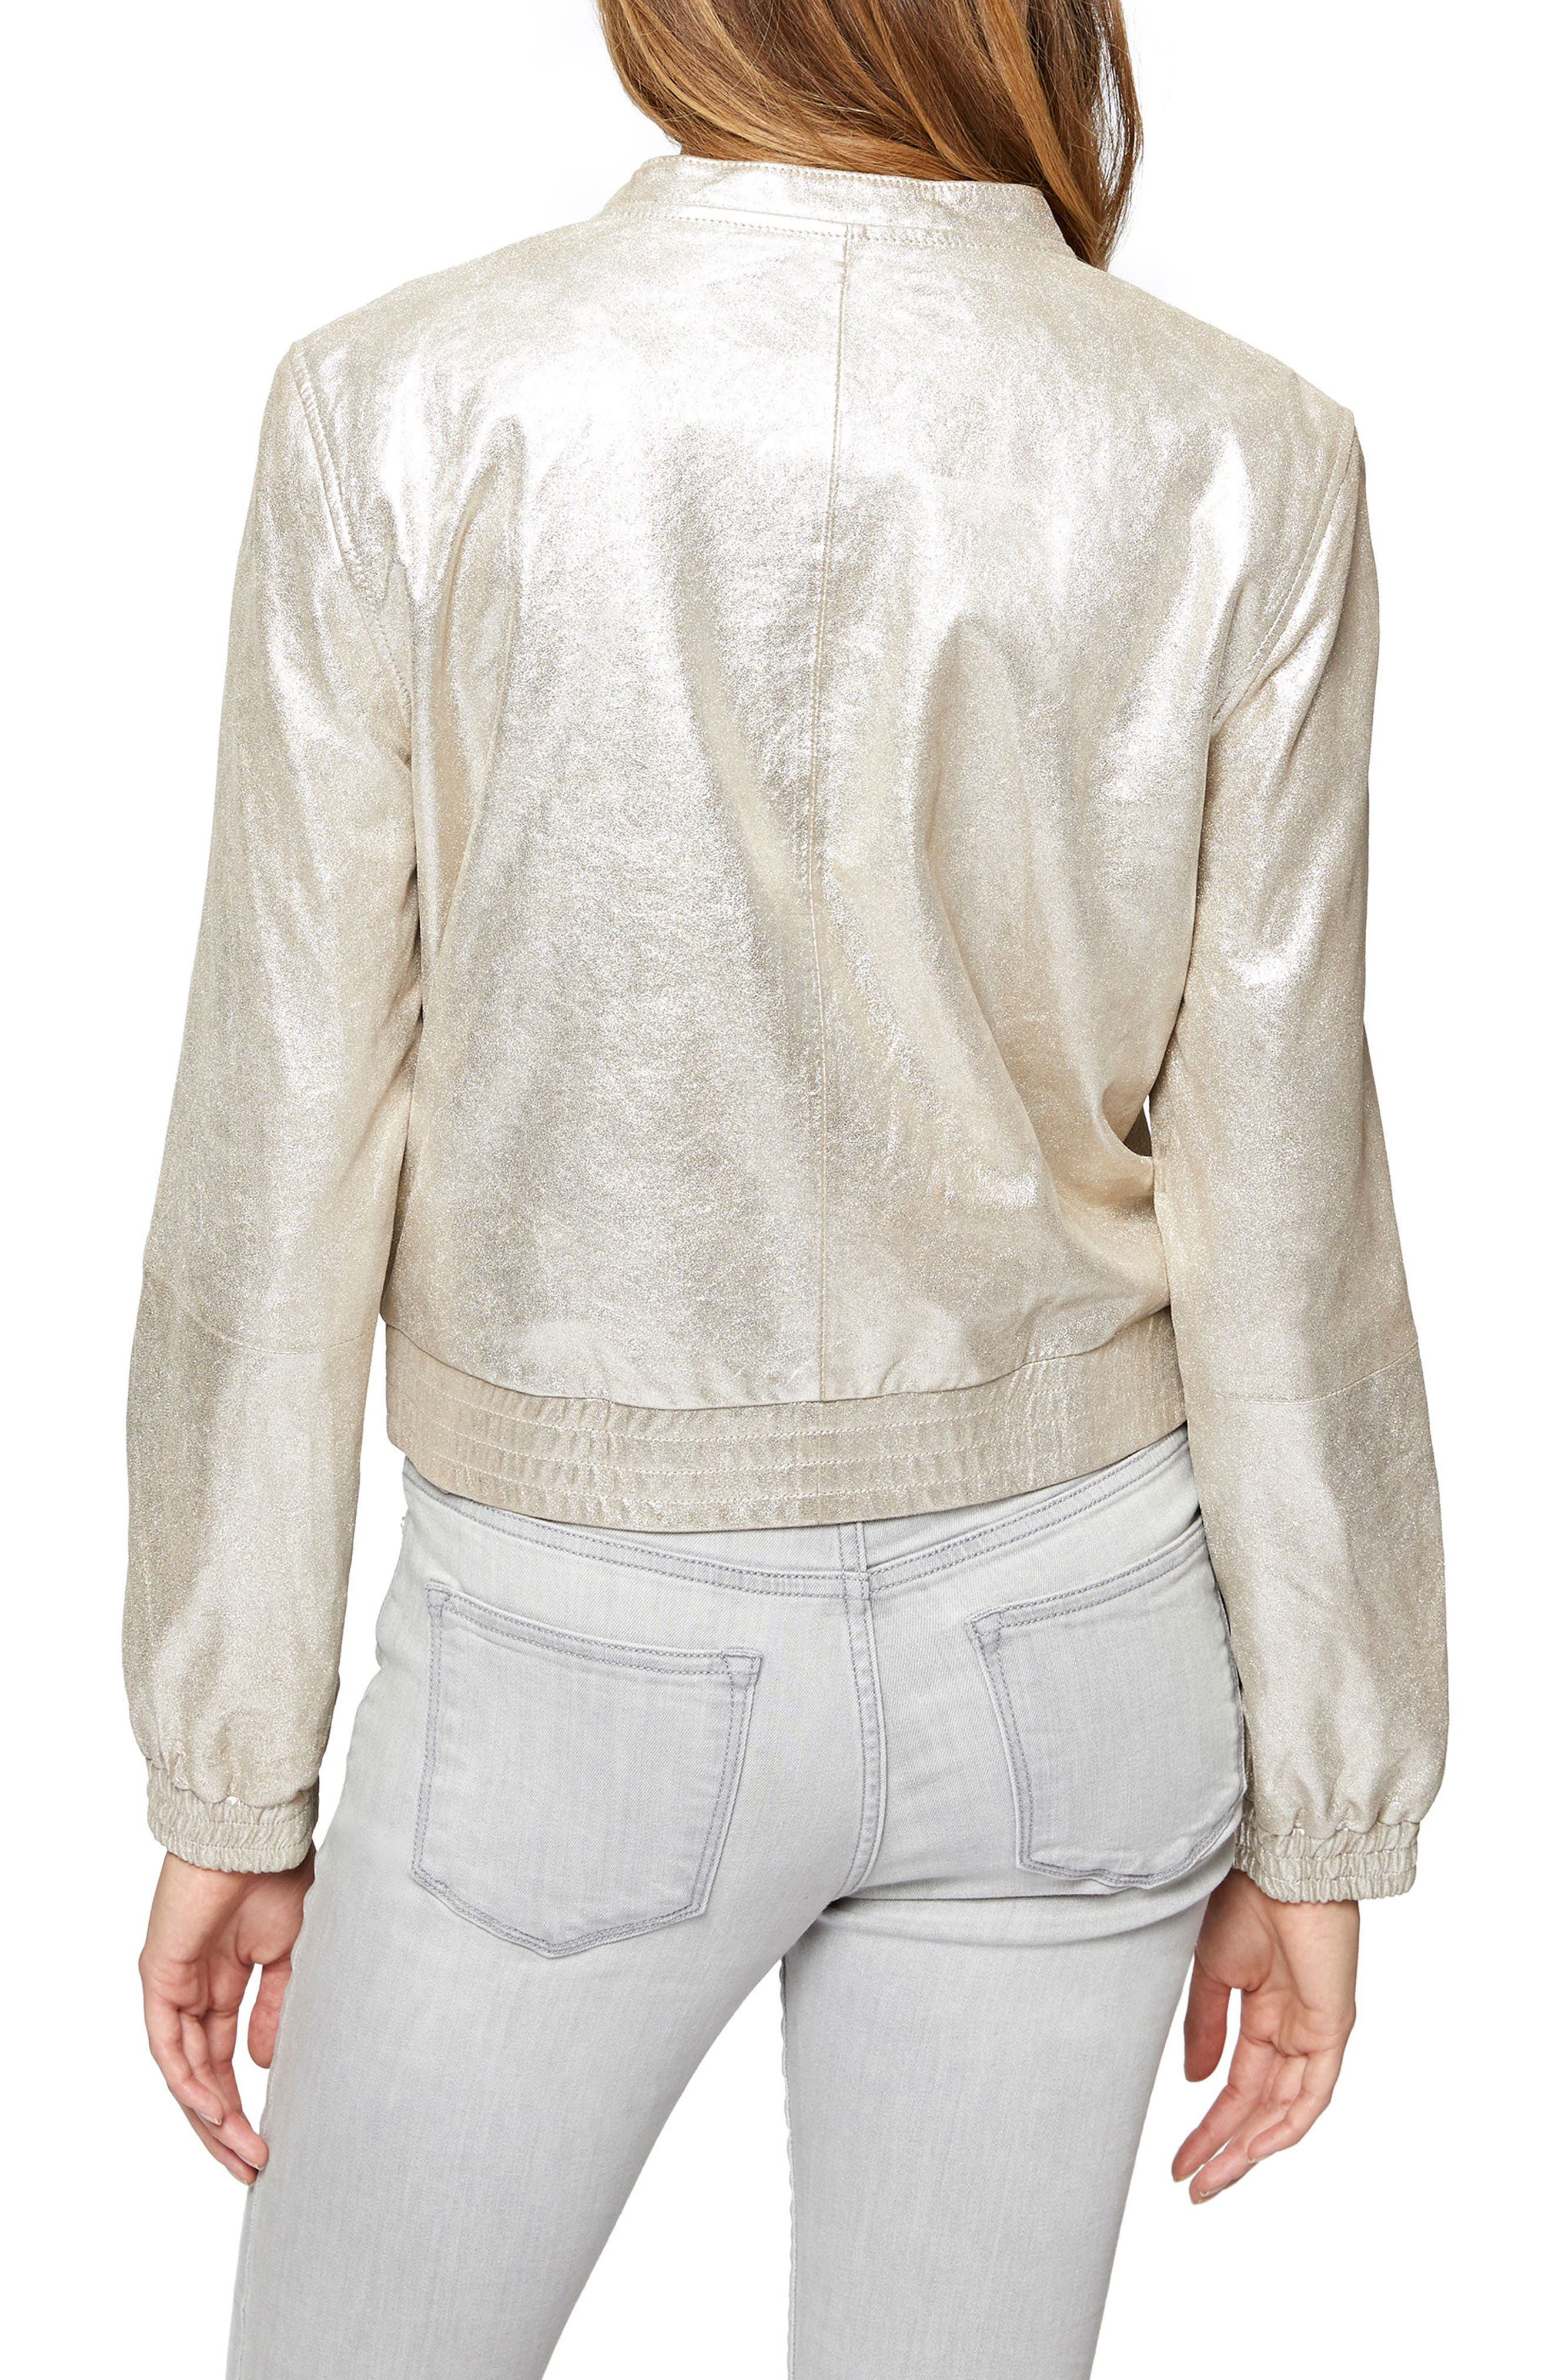 Cool Gang Metallic Leather Bomber Jacket,                             Alternate thumbnail 2, color,                             040